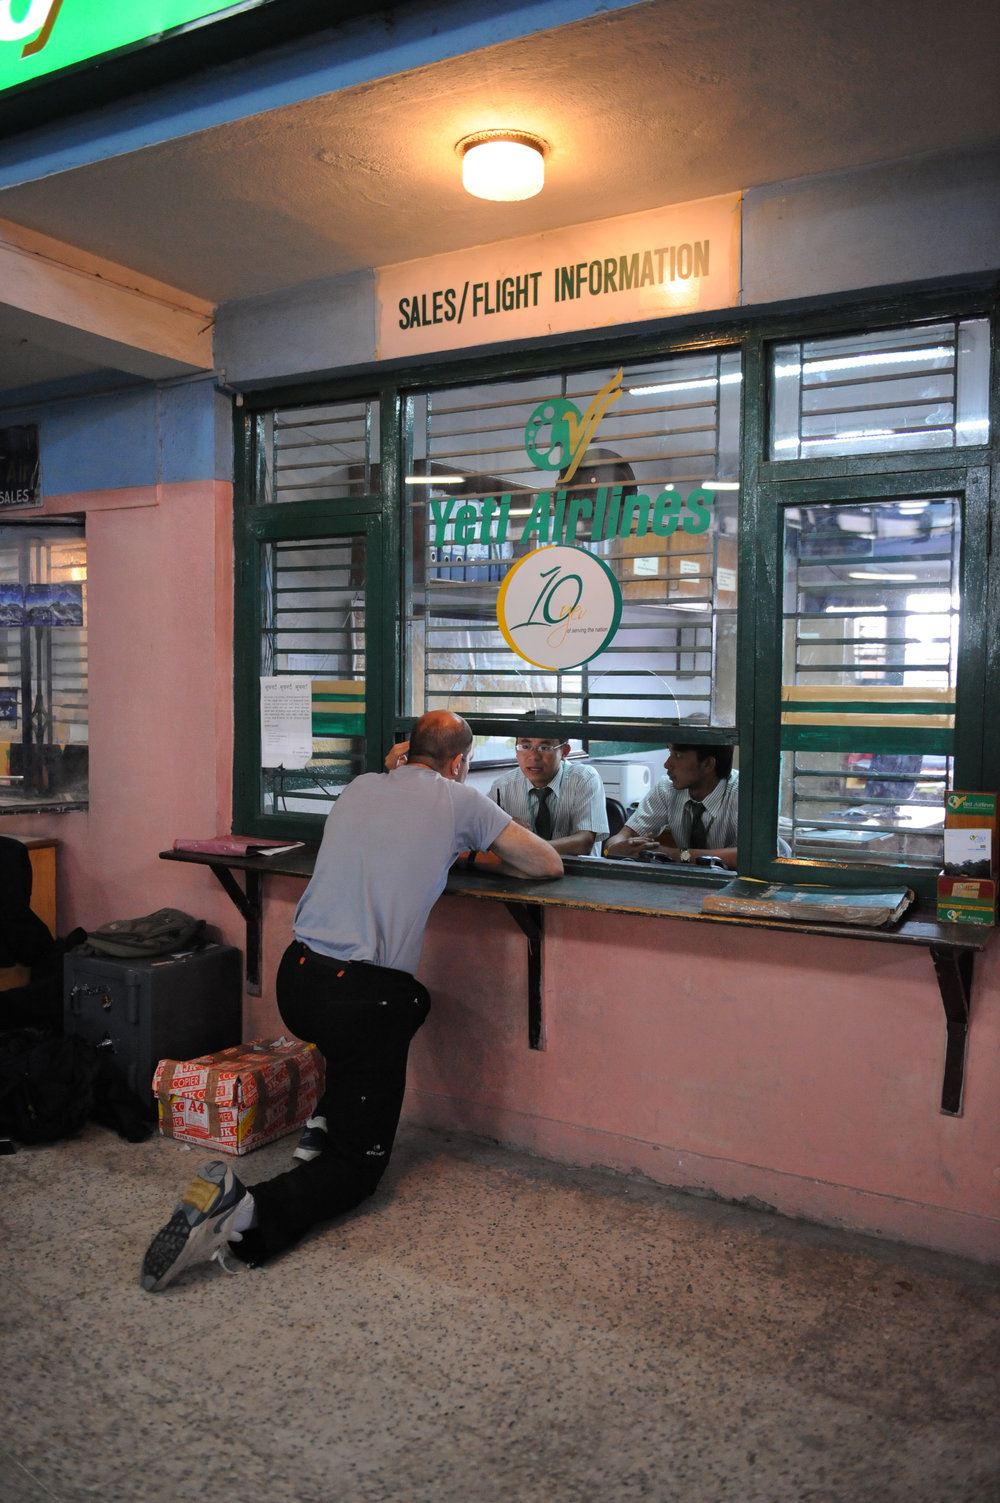 Yves 'prays' for early departure at Yeti Airlines' office.